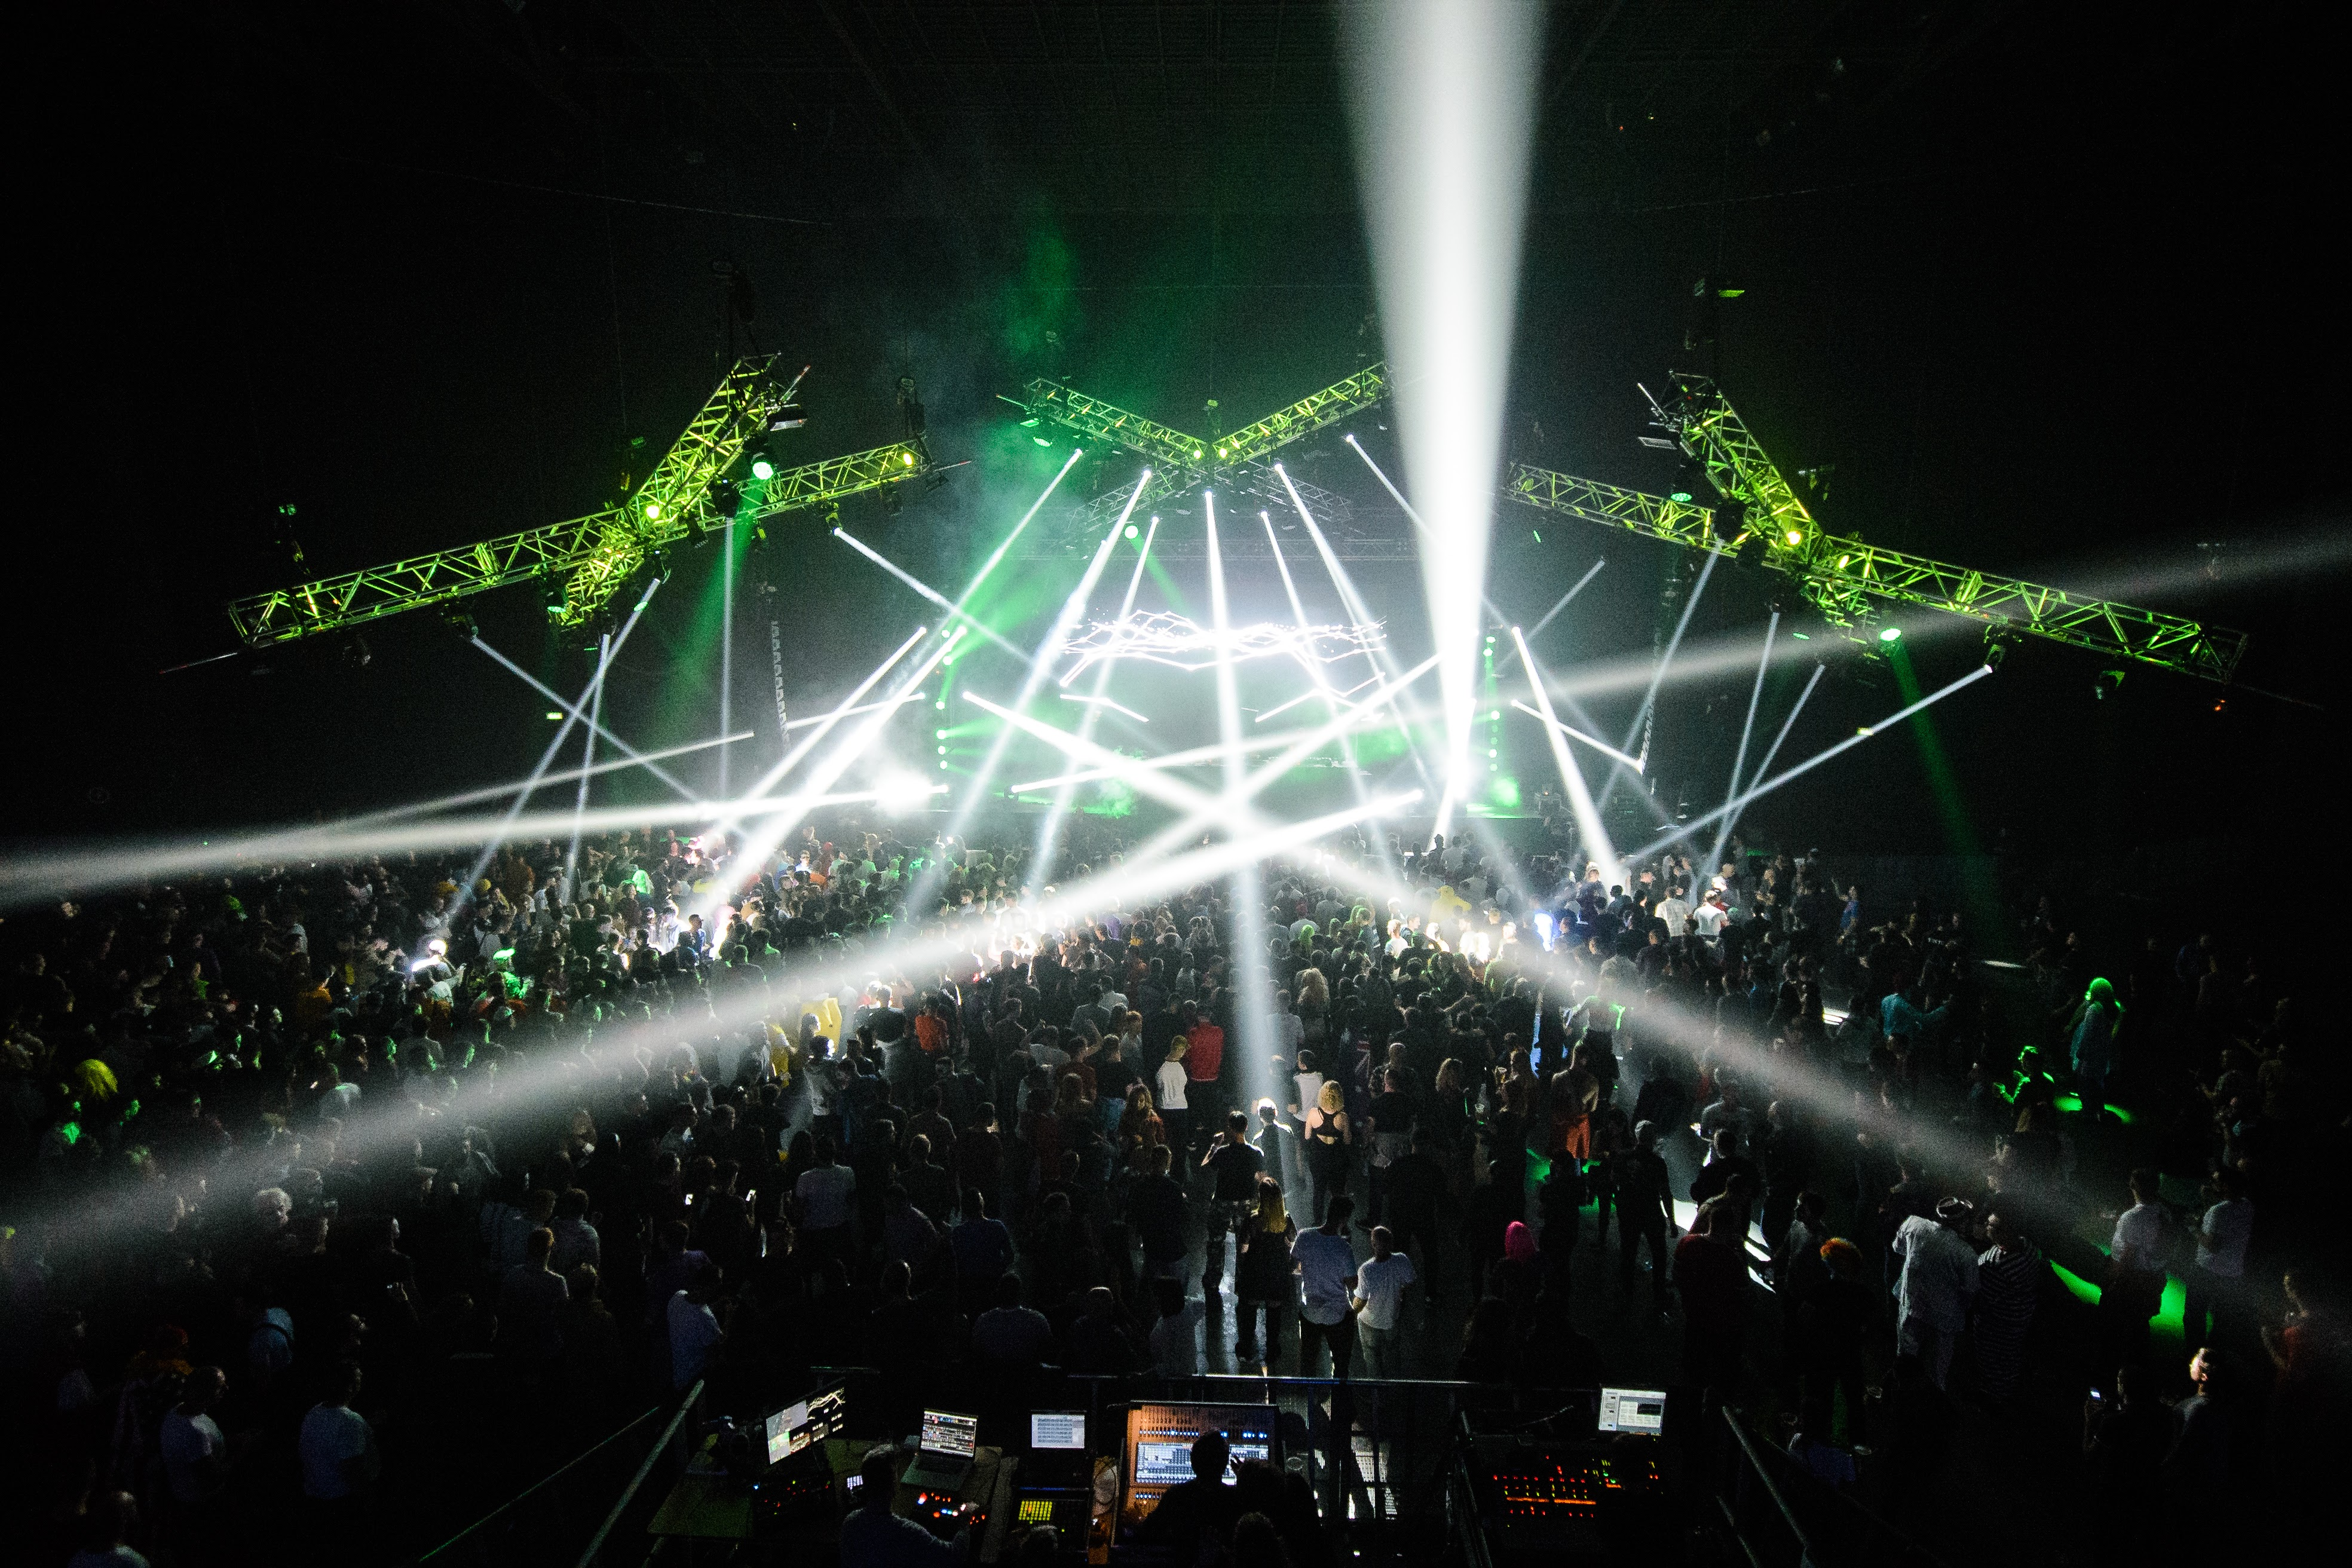 winterparty-at-3arena-dublin-30-10-2016-by-sean-smyth-23-of-53